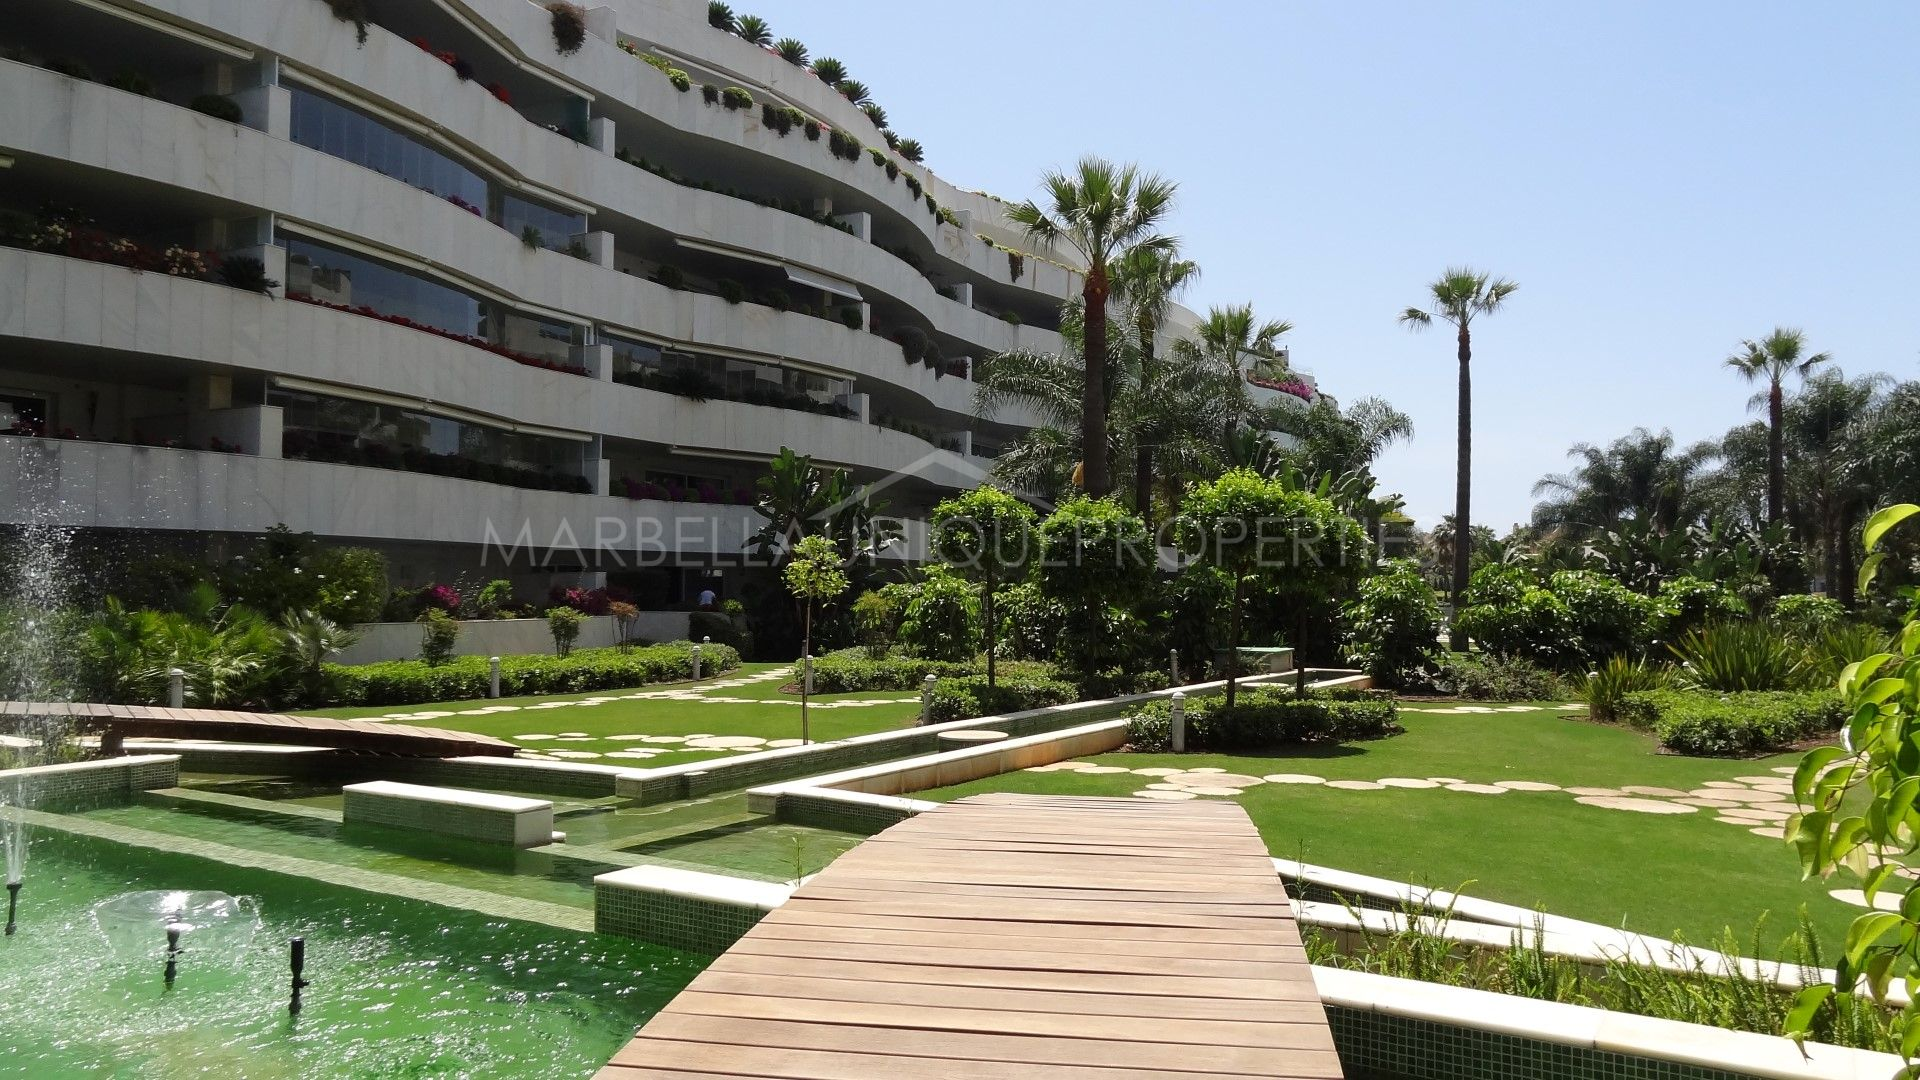 Appartement en location el embrujo ban s marbella for Appartement en location